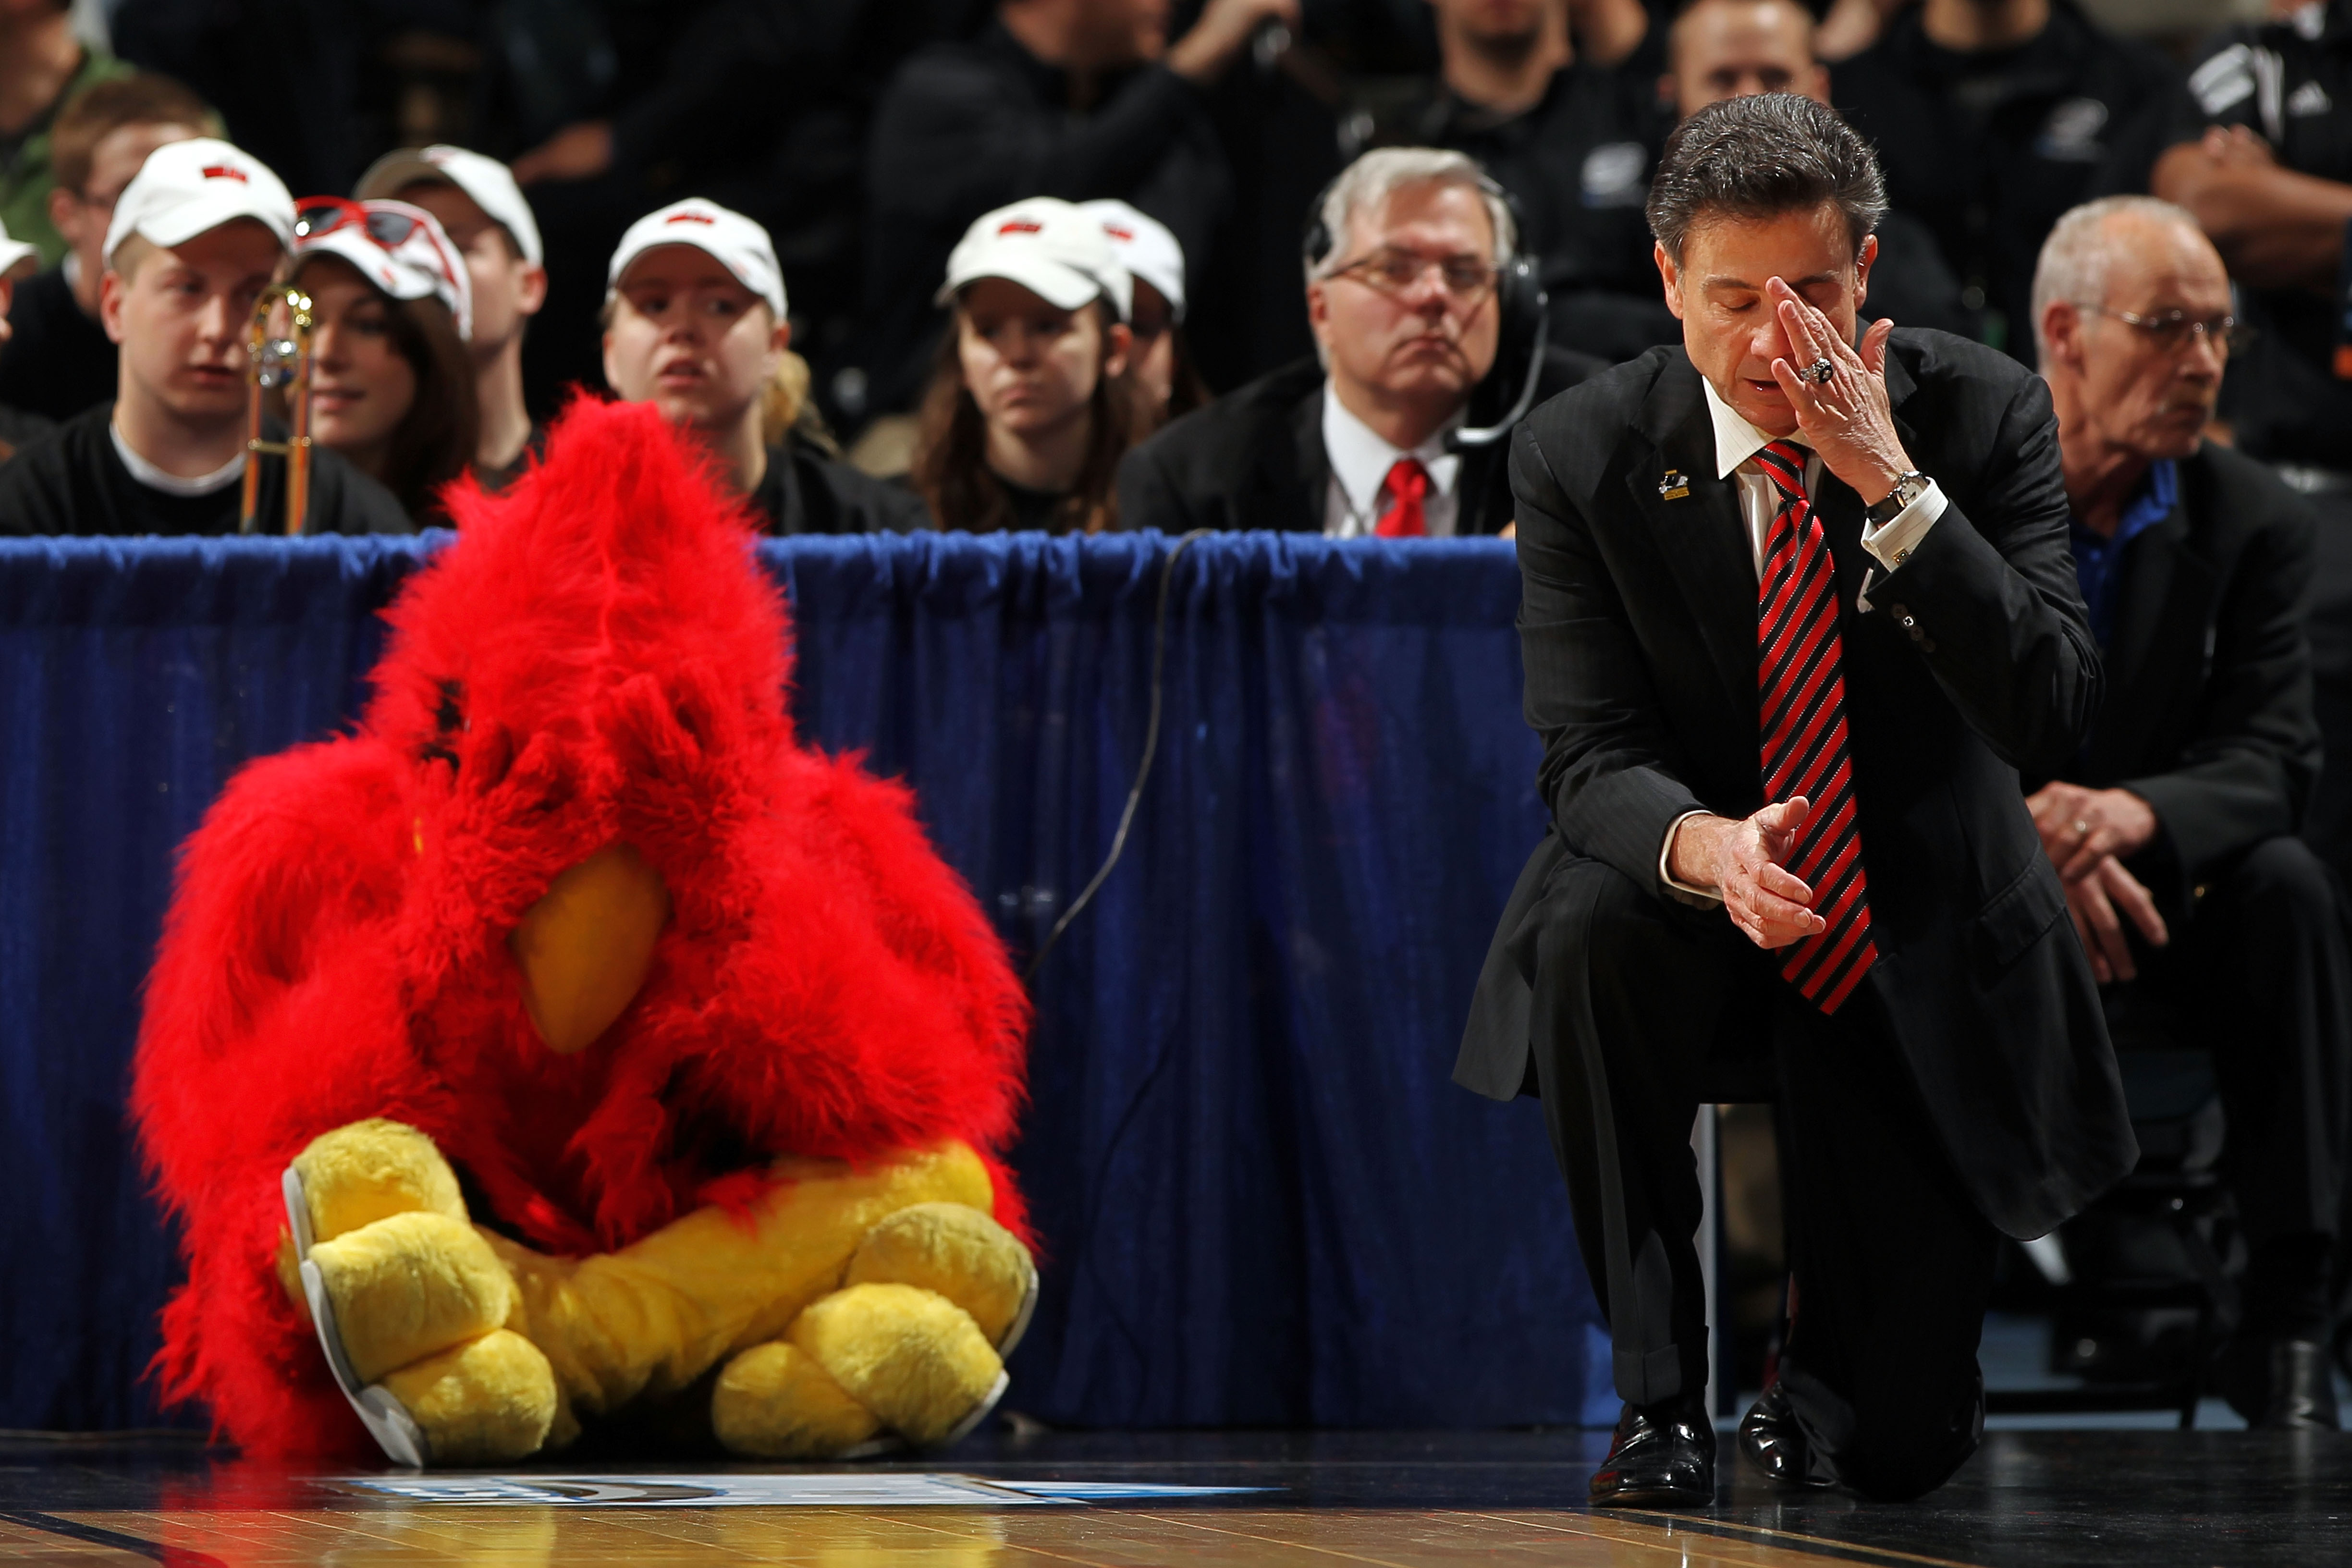 DENVER, CO - MARCH 17:  Head coach Rick Pitino of the Louisville Cardinals and the teams mascot react after a play while playing against the Morehead State Eagles during the second round of the 2011 NCAA men's basketball tournament at Pepsi Center on March 17, 2011 in Denver, Colorado.  (Photo by Doug Pensinger/Getty Images)